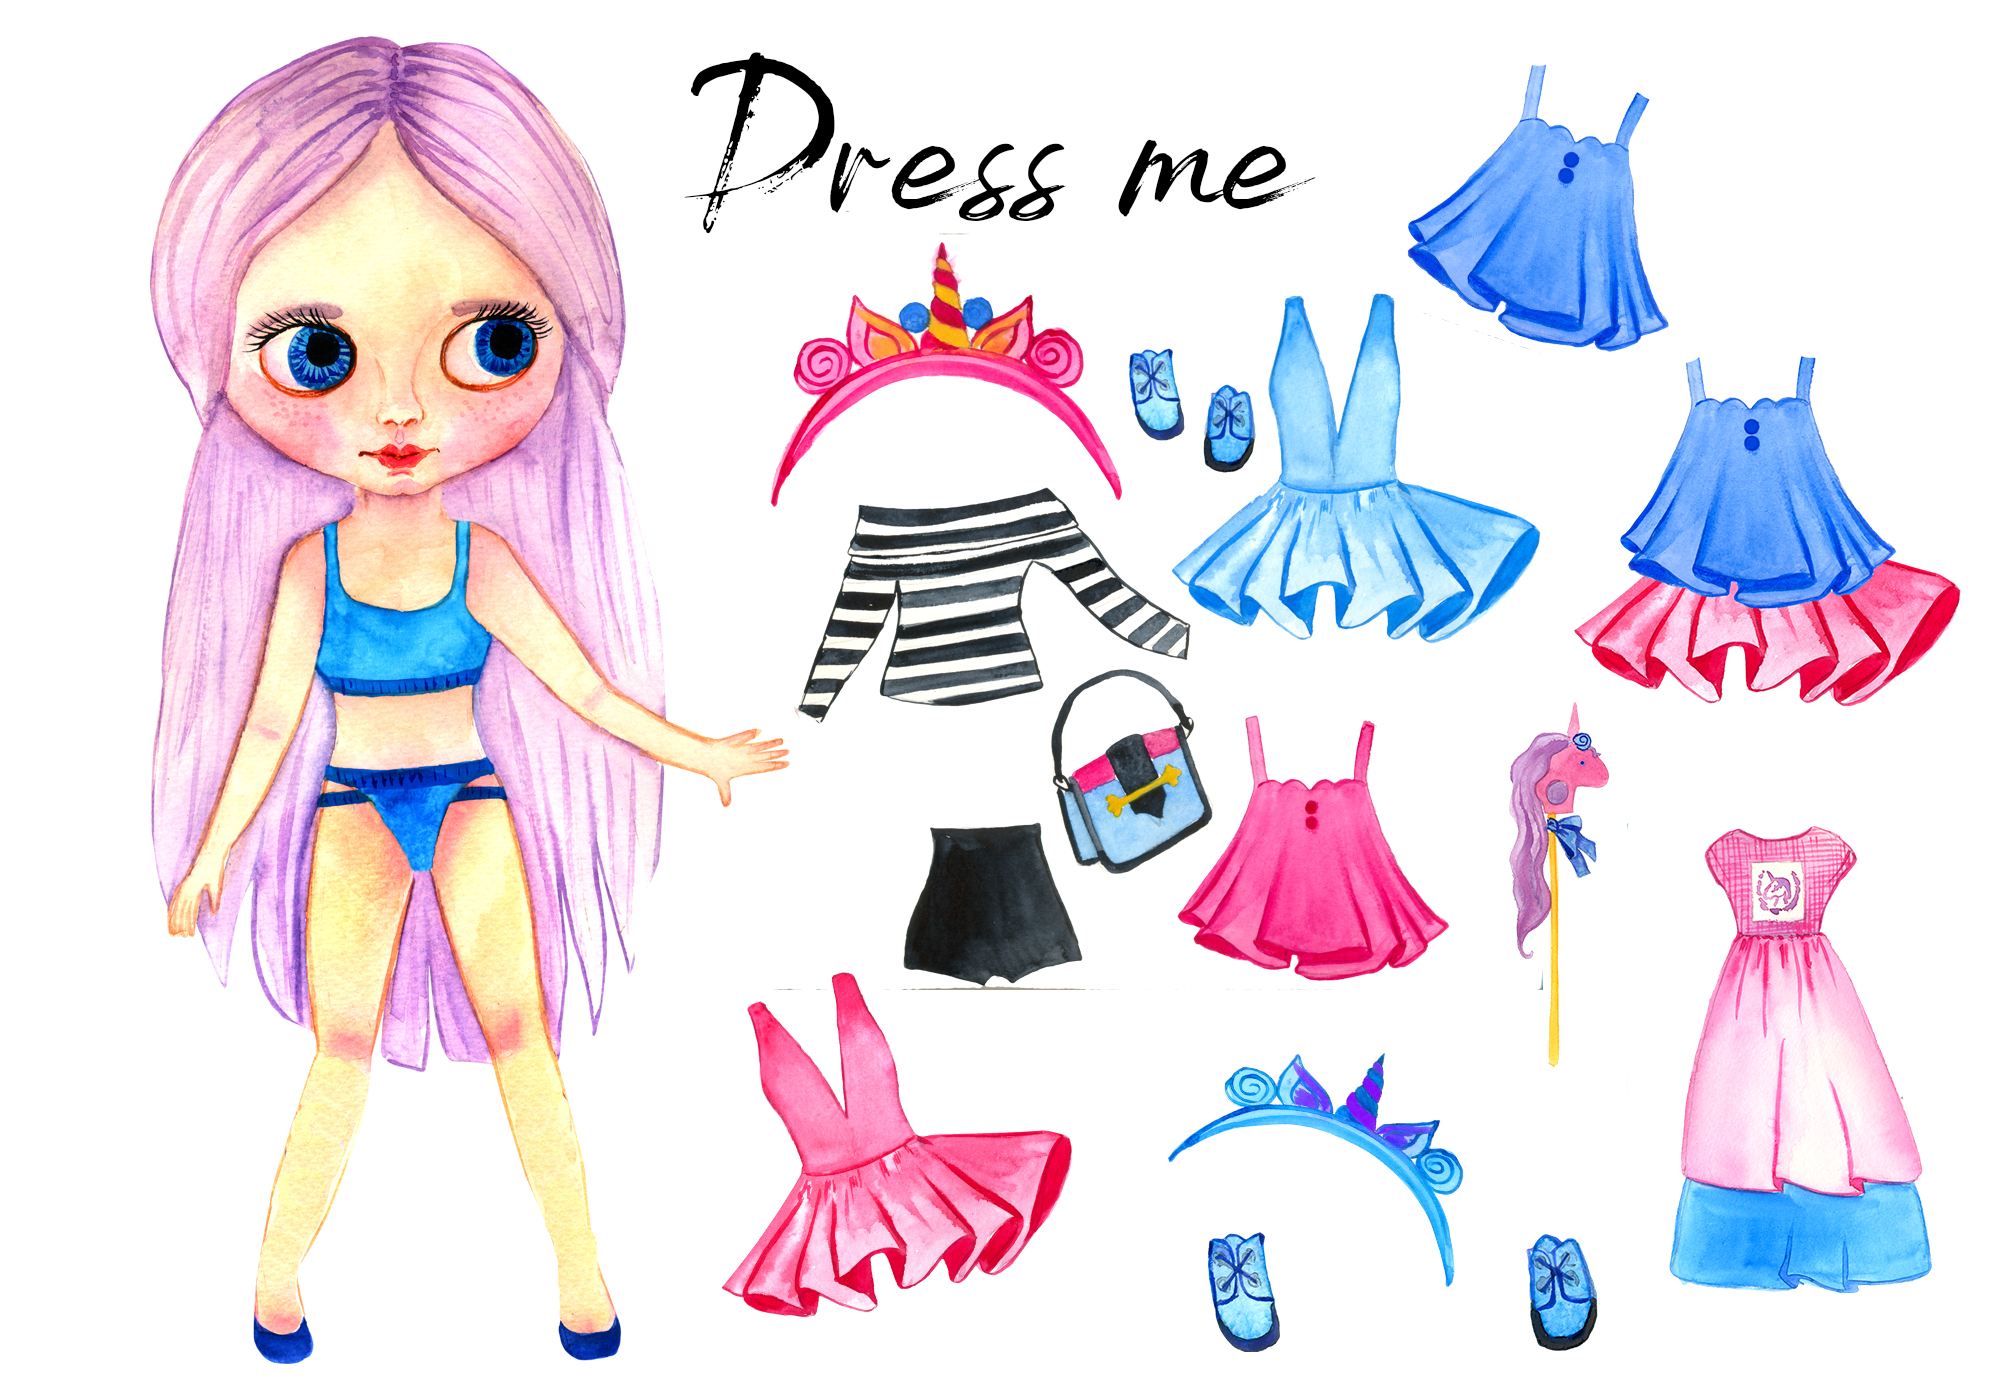 Pink Paper Doll With Clothes For Change Graphic By Elenazlataart